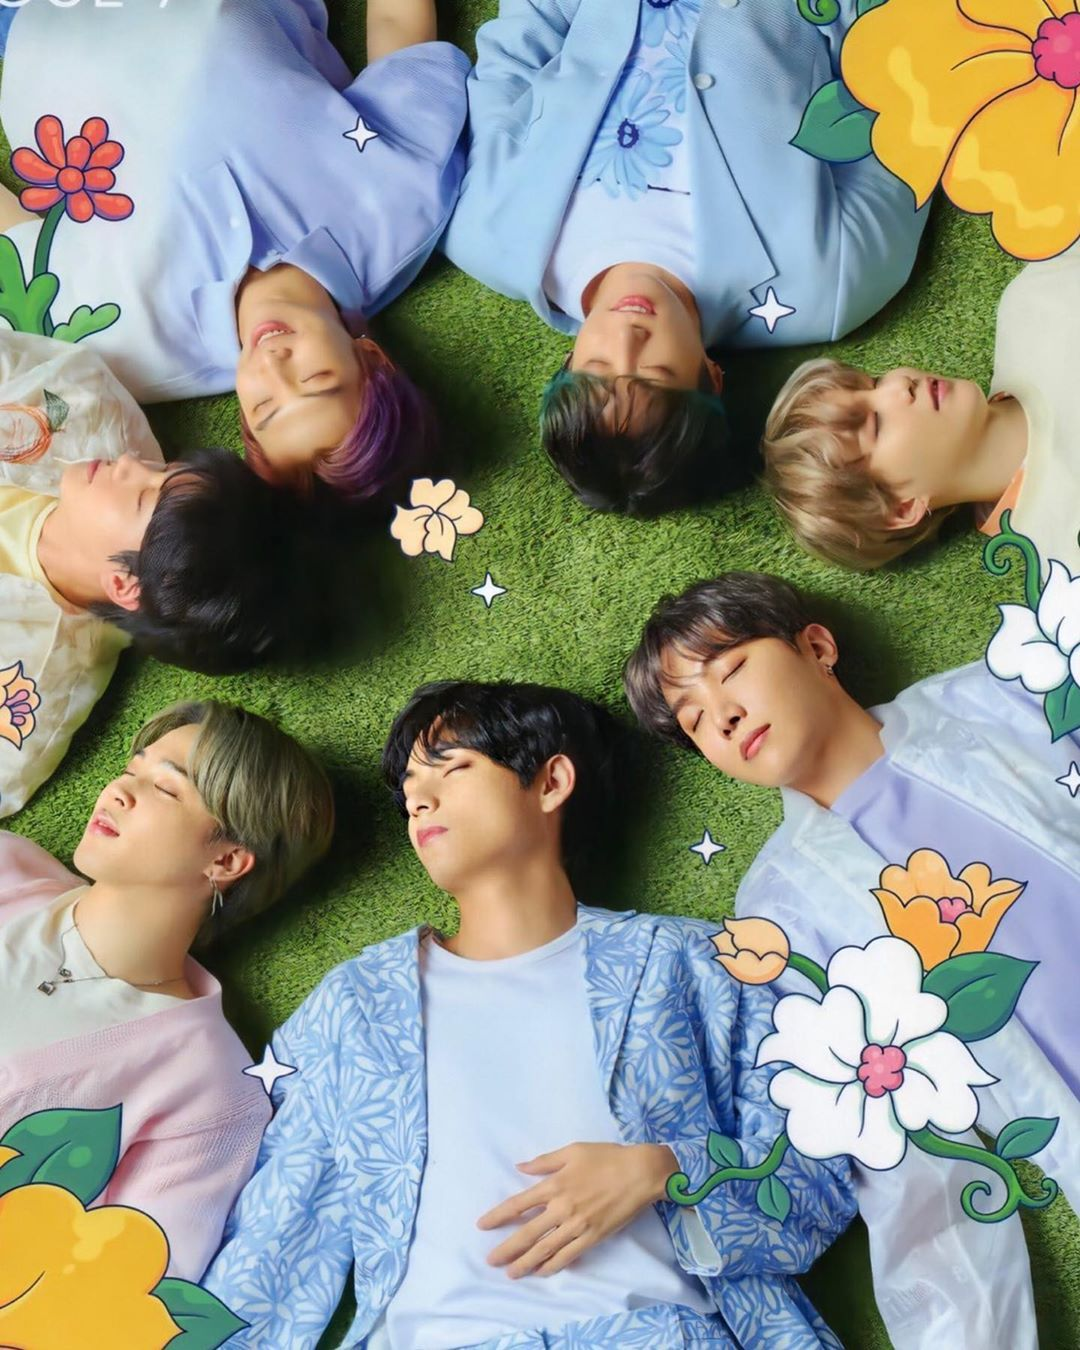 Bts On Instagram Rate Your Eyes Tell From 0 100 Credit To Nana K On Twitter Bts Wallpaper Bts Jimin Bts Bts wallpaper hd instagram